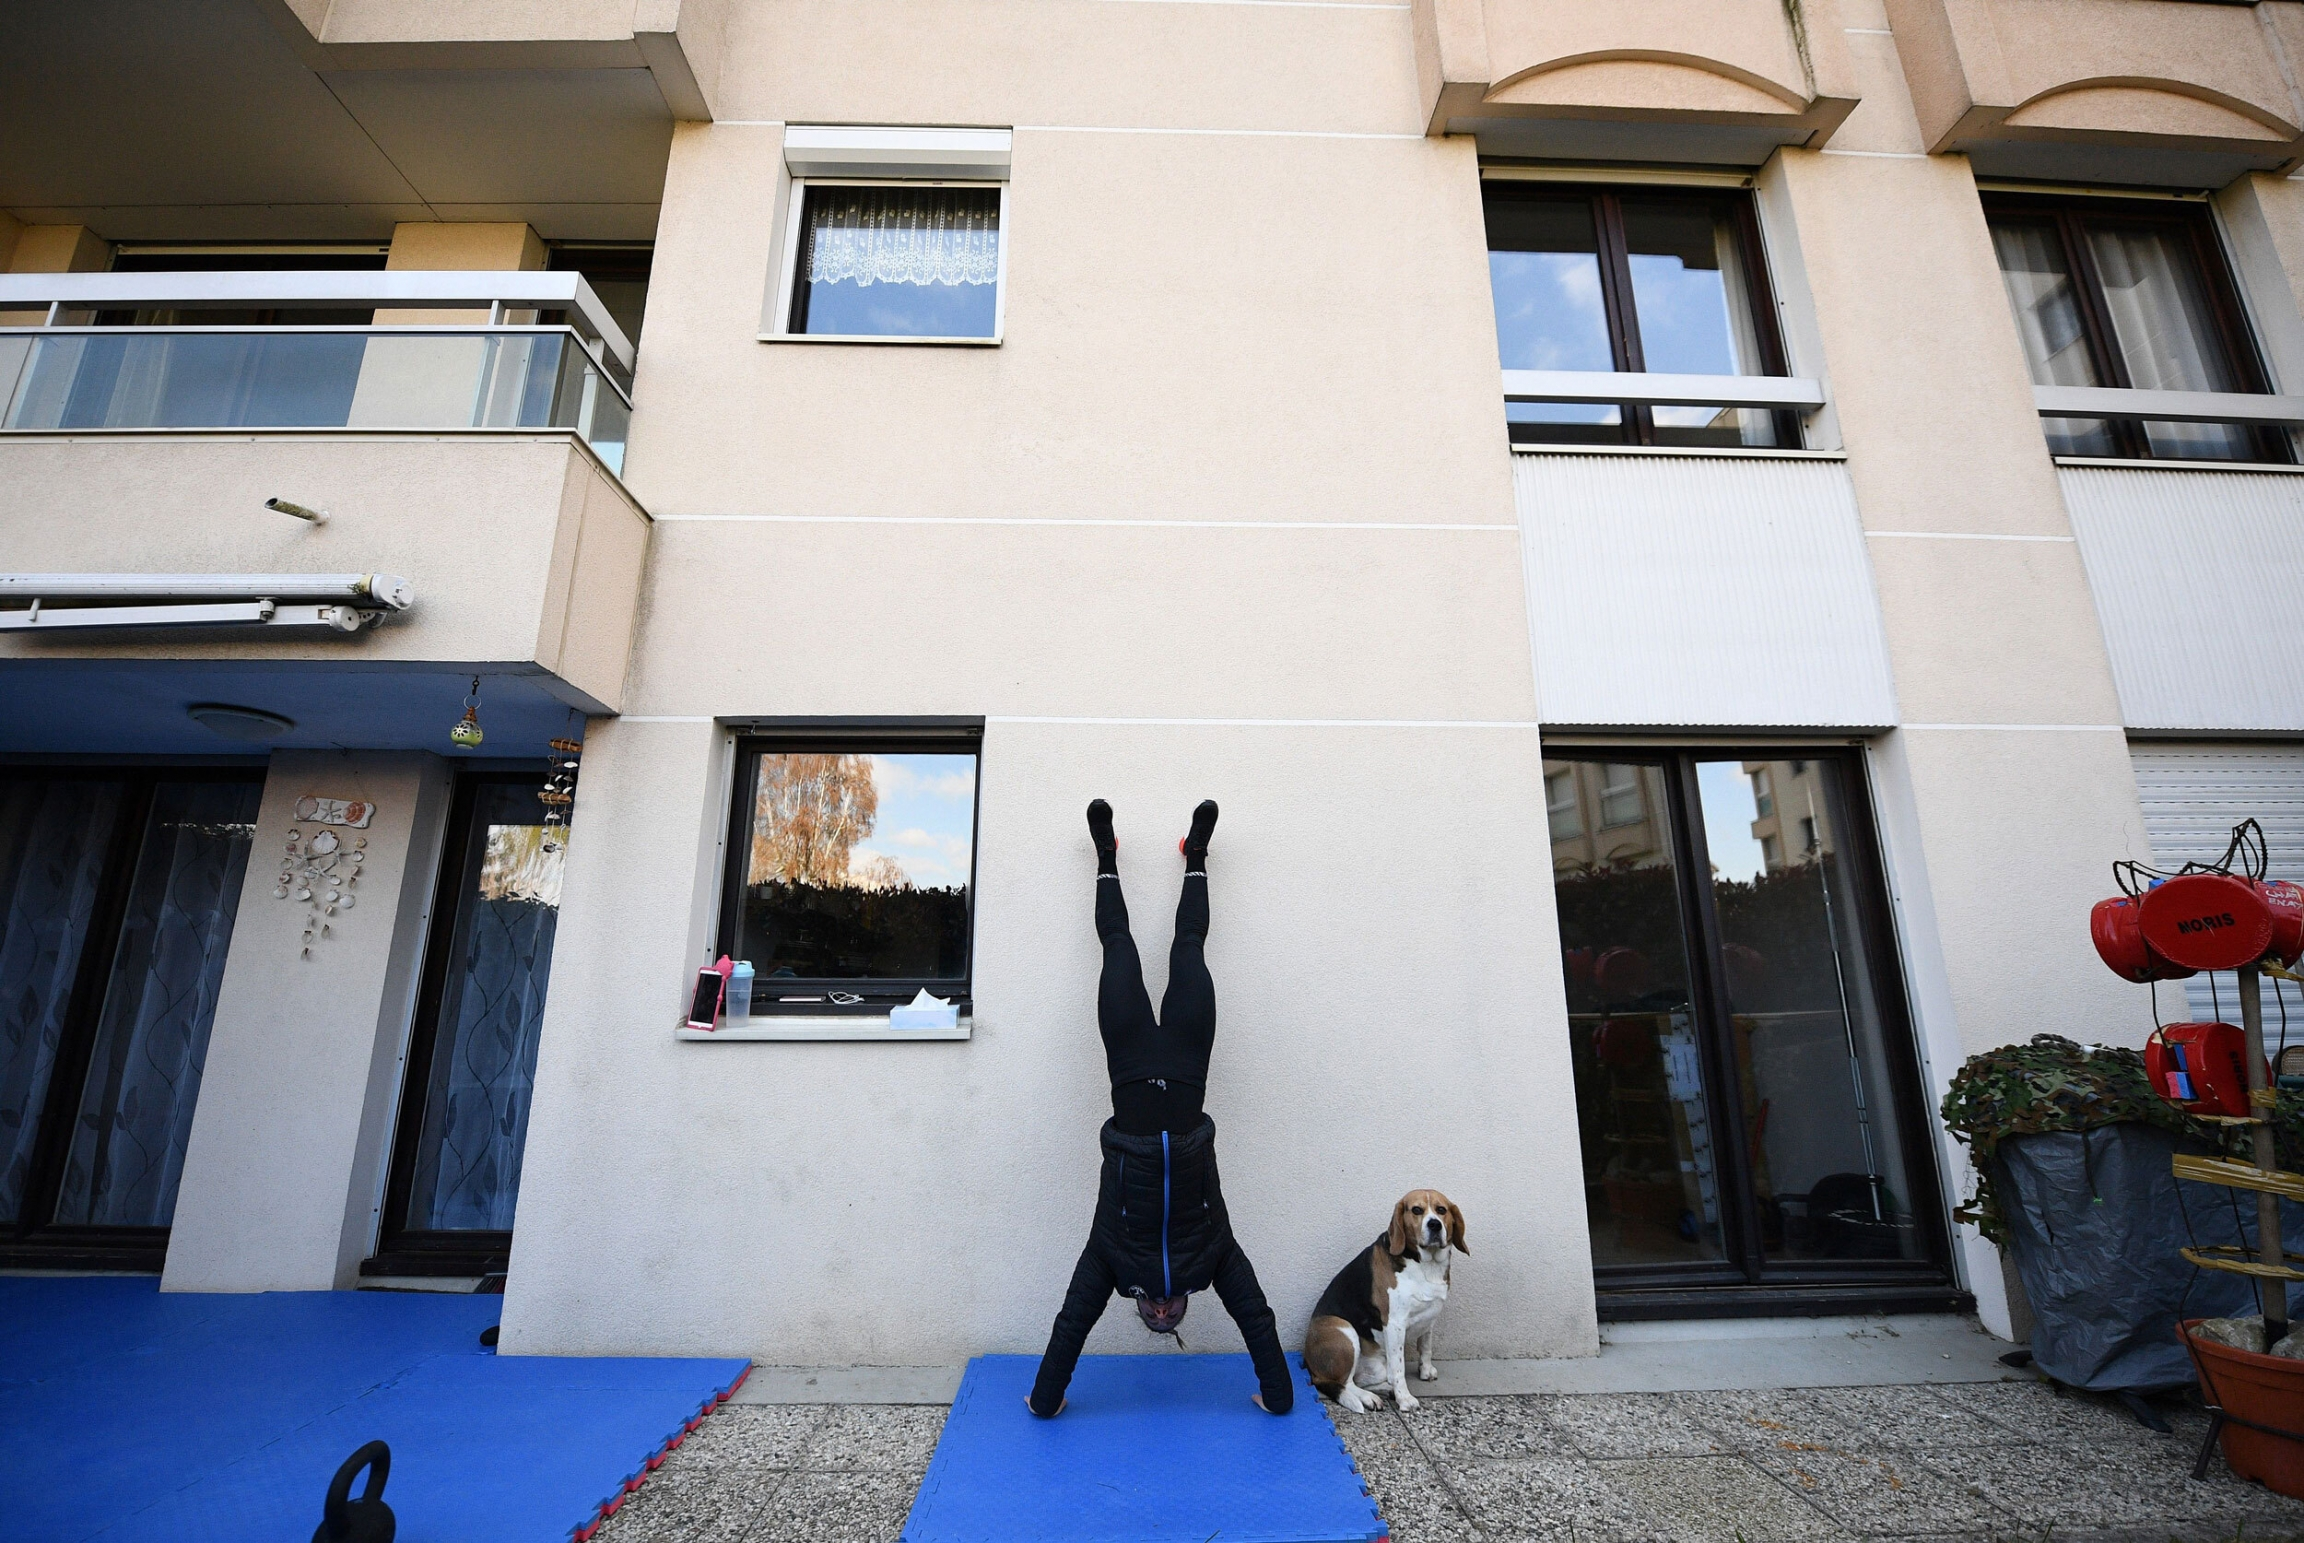 A woman on black gym clothes does a hand-stand on a mat in her backyard.